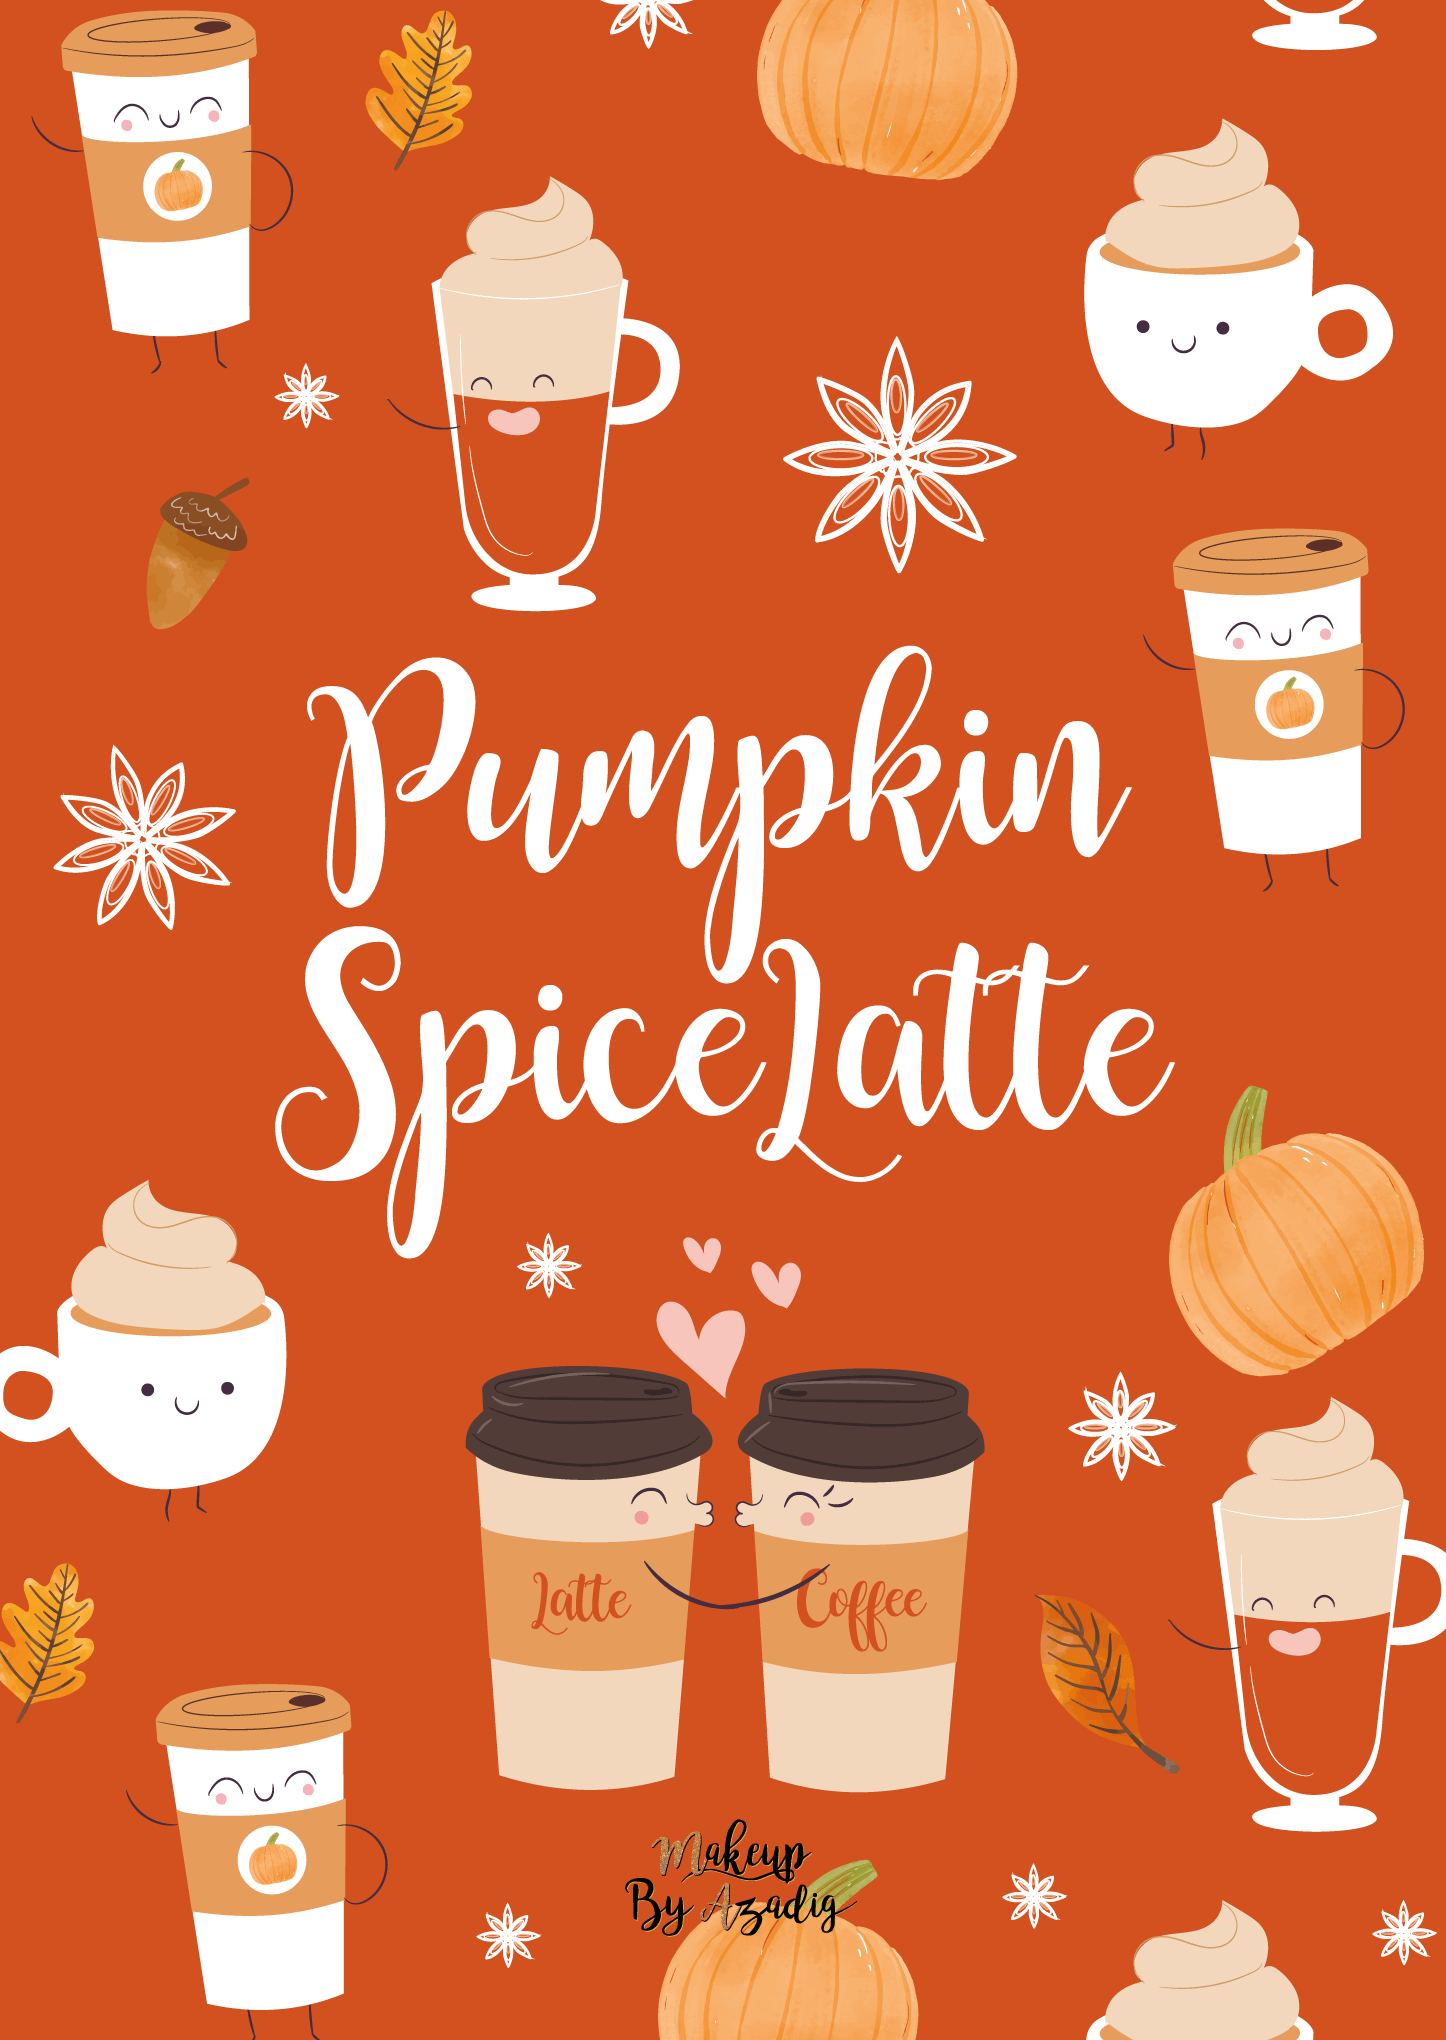 fond-decran-wallpaper-automne-leaves-autumn-pumpkin-spice-latte-starbucks-ipad-tablette-apple-makeupbyazadig-tendance